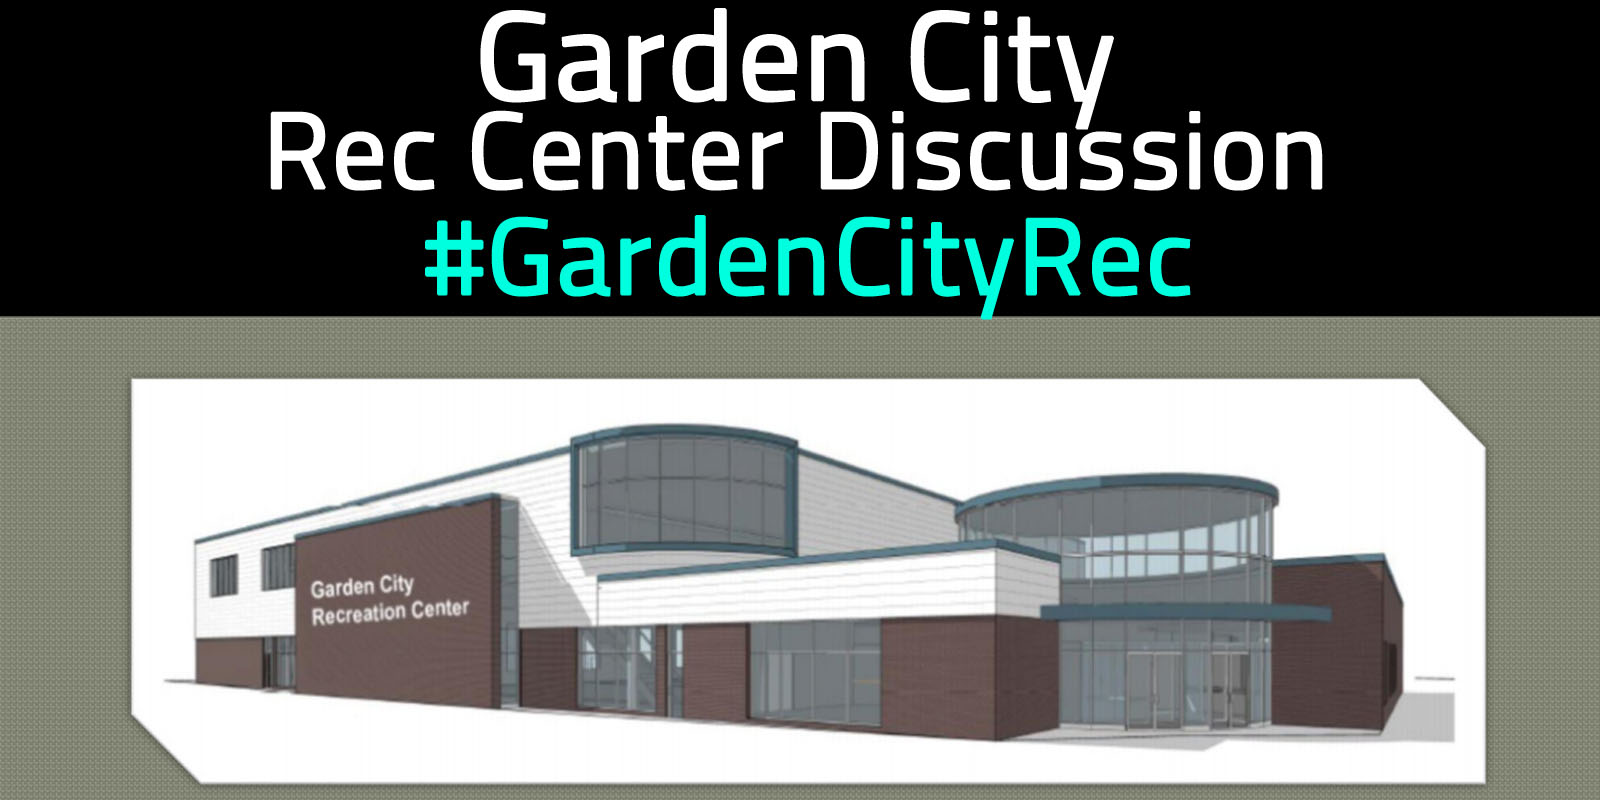 rct online news garden city rec center thoughts joey